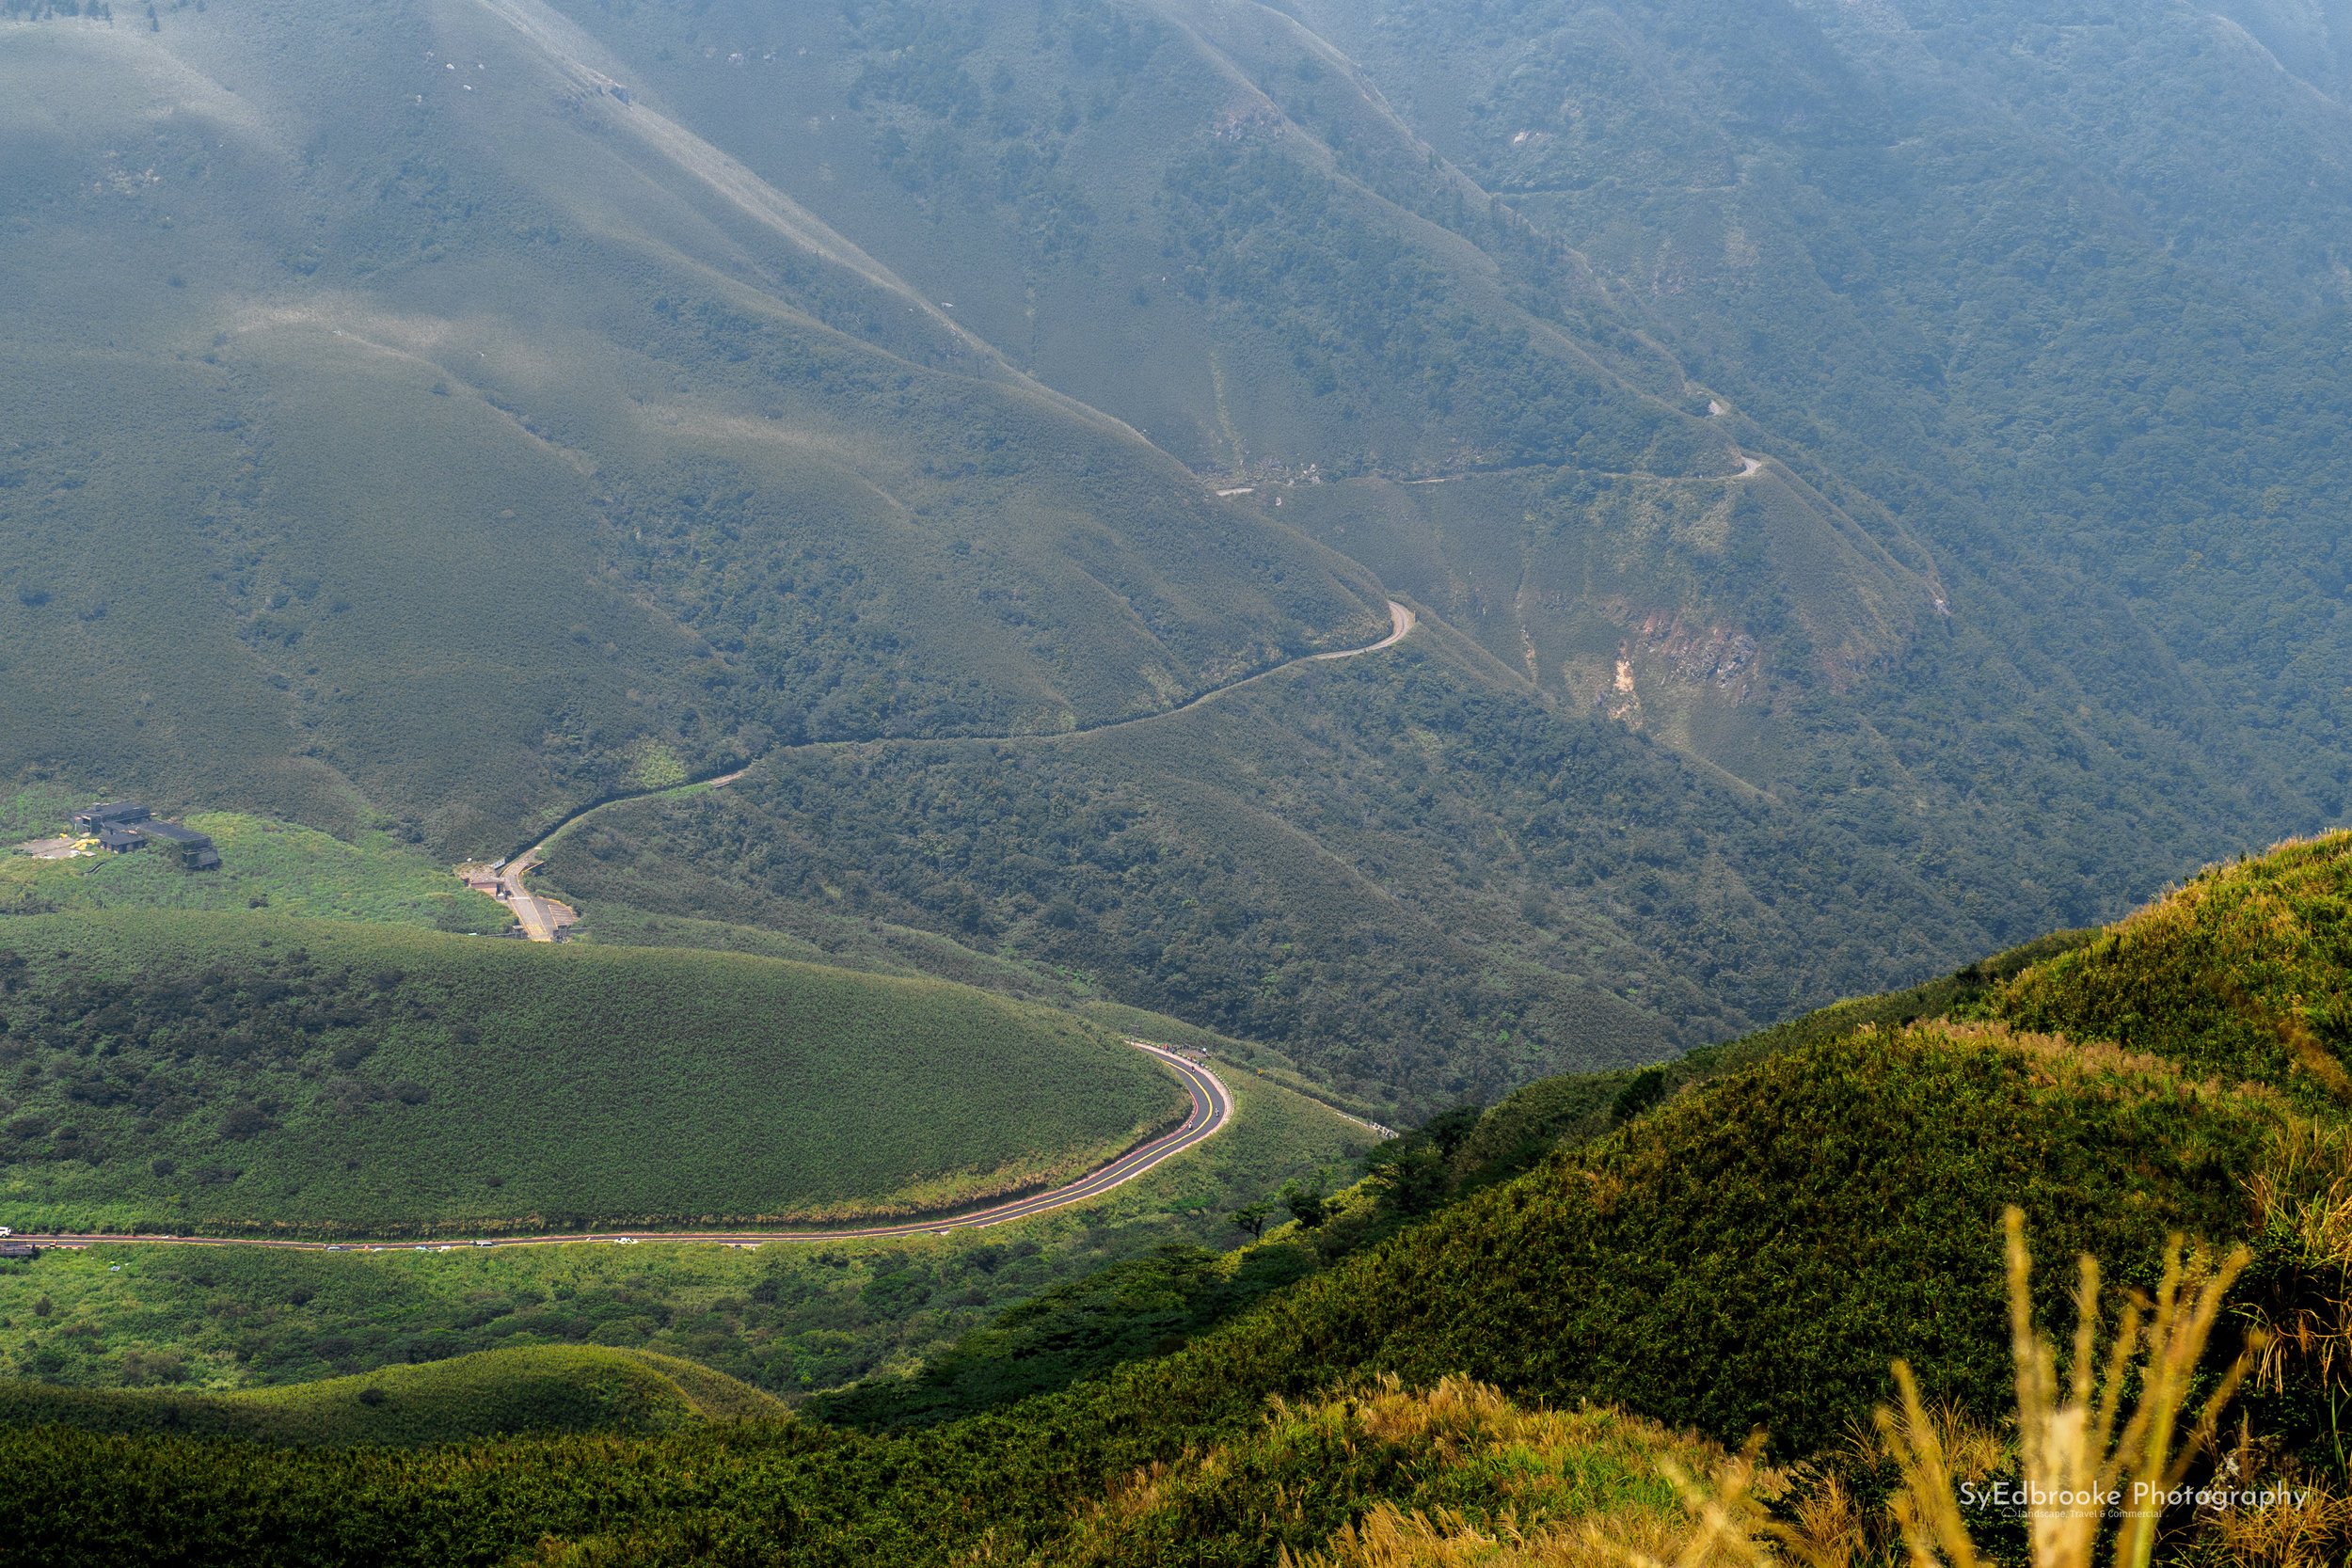 The bus route that takes you up the mountain, winding it's way through the valley.f8, ISO 250, 1/160, 150mm